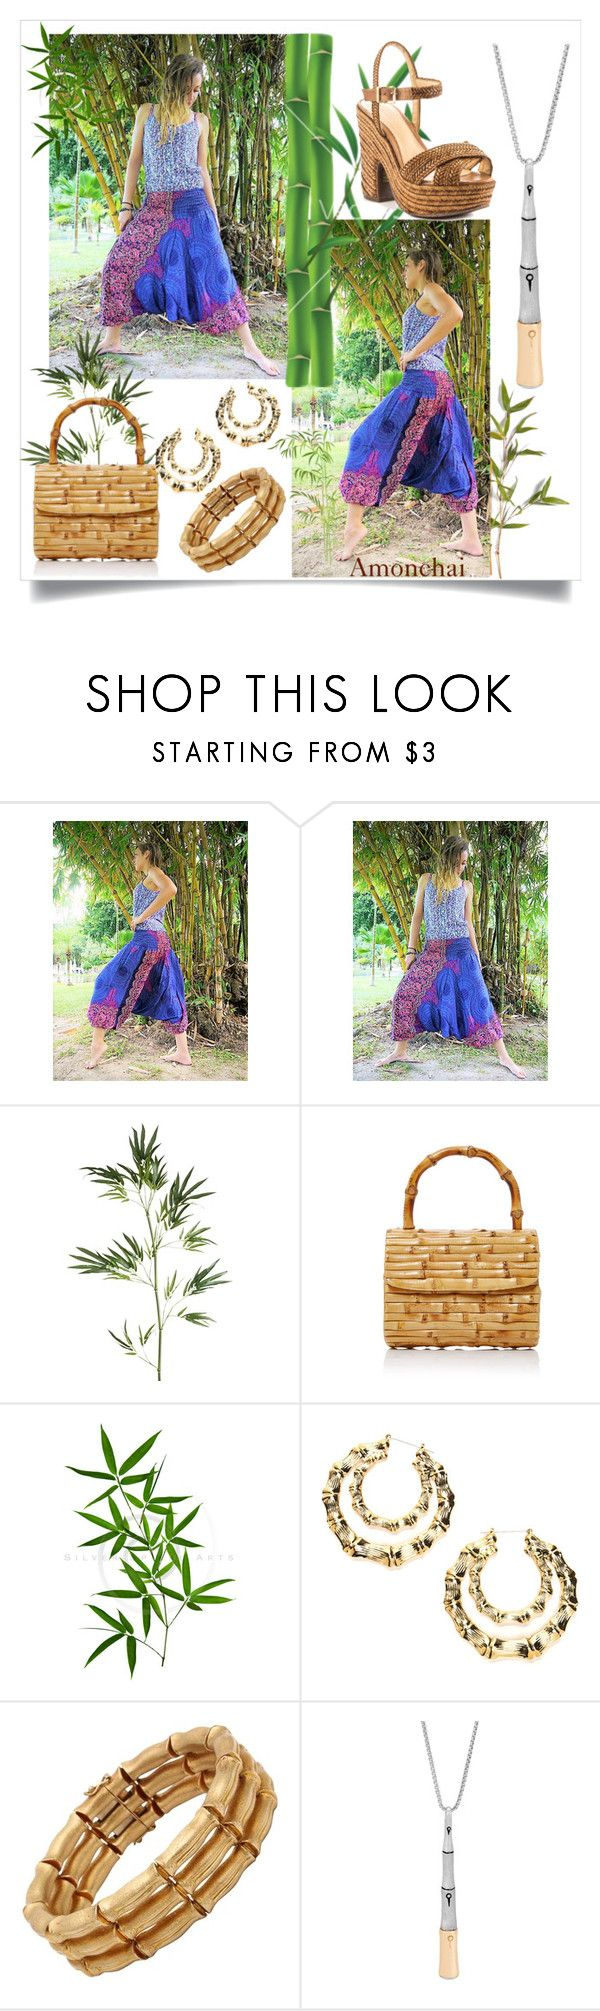 Wear to your next holiday destination. Aruba, Hawaii, Thailand, Australia, Florida! Dress with Nature. Bamboo accessories is a good match with purple and pink floral Harem pants.  Harem pants by Amonchai www.amonchai.com  #travel #earth #bamboo #jumpsuit #holiday #summer #beach #thailand #harempants #etsy #accessories #polyvore #amonchai #women #girly #cute #purple #floral #pink #flower  Bamboo by amonchai on Polyvore featuring Schutz, Glorinha Paranagua, John Hardy and Pier 1 Imports